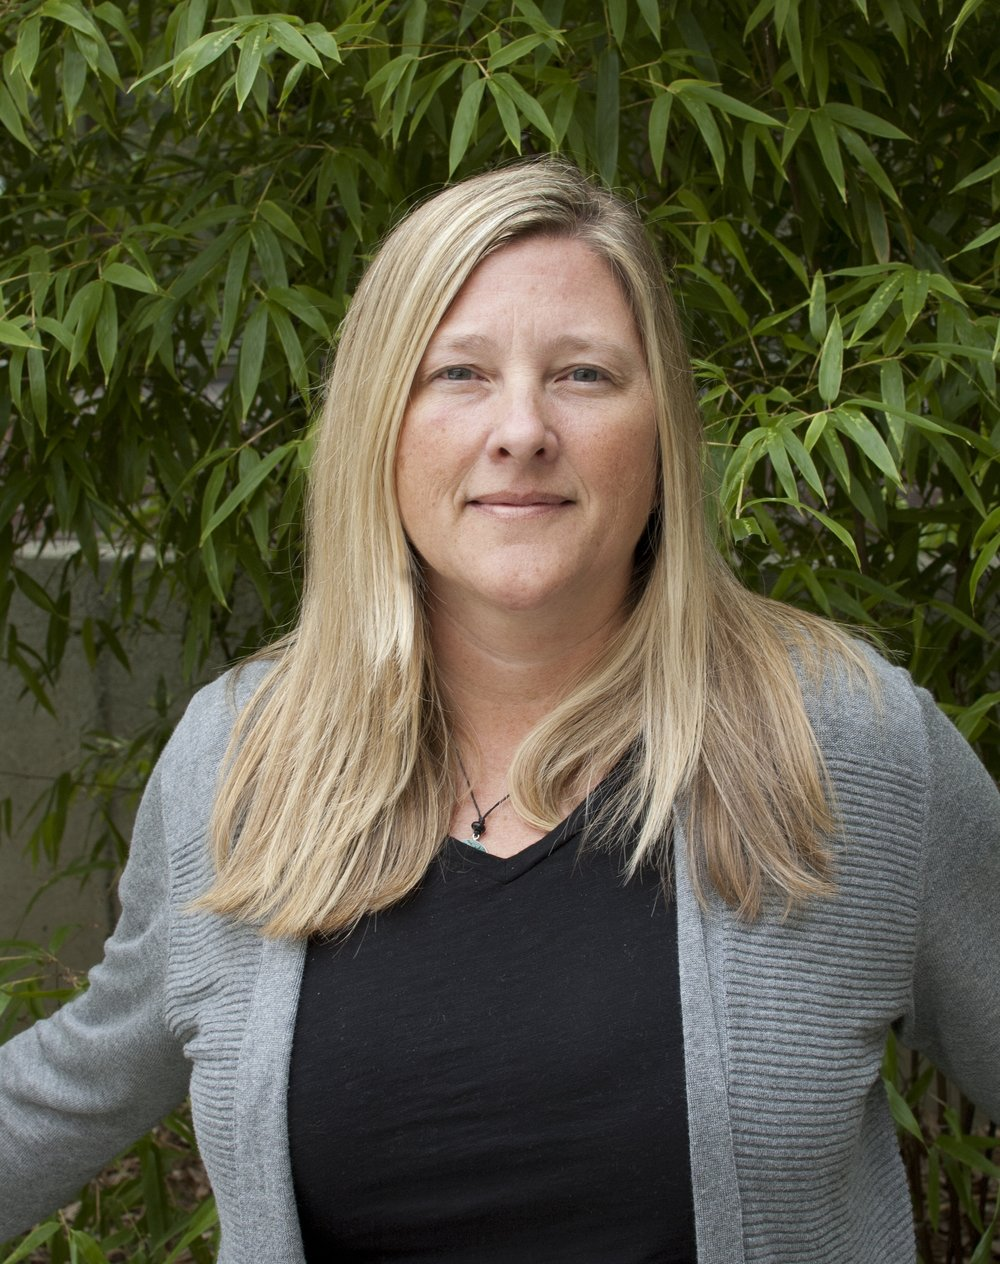 Tania Busch Isaksen, PhD, MPH  Dr. Busch Isaksen is an exposure scientist and faculty member in the University of Washington's Department of Environmental and Occupational Health Sciences. She has over 24 years of environmental public health experience working in public, private and academic settings. She maintains an active, practice-based research portfolio focused on measuring impacts from extreme heat on health outcomes, climate change risk communication methods, and public health adaptation planning and response.